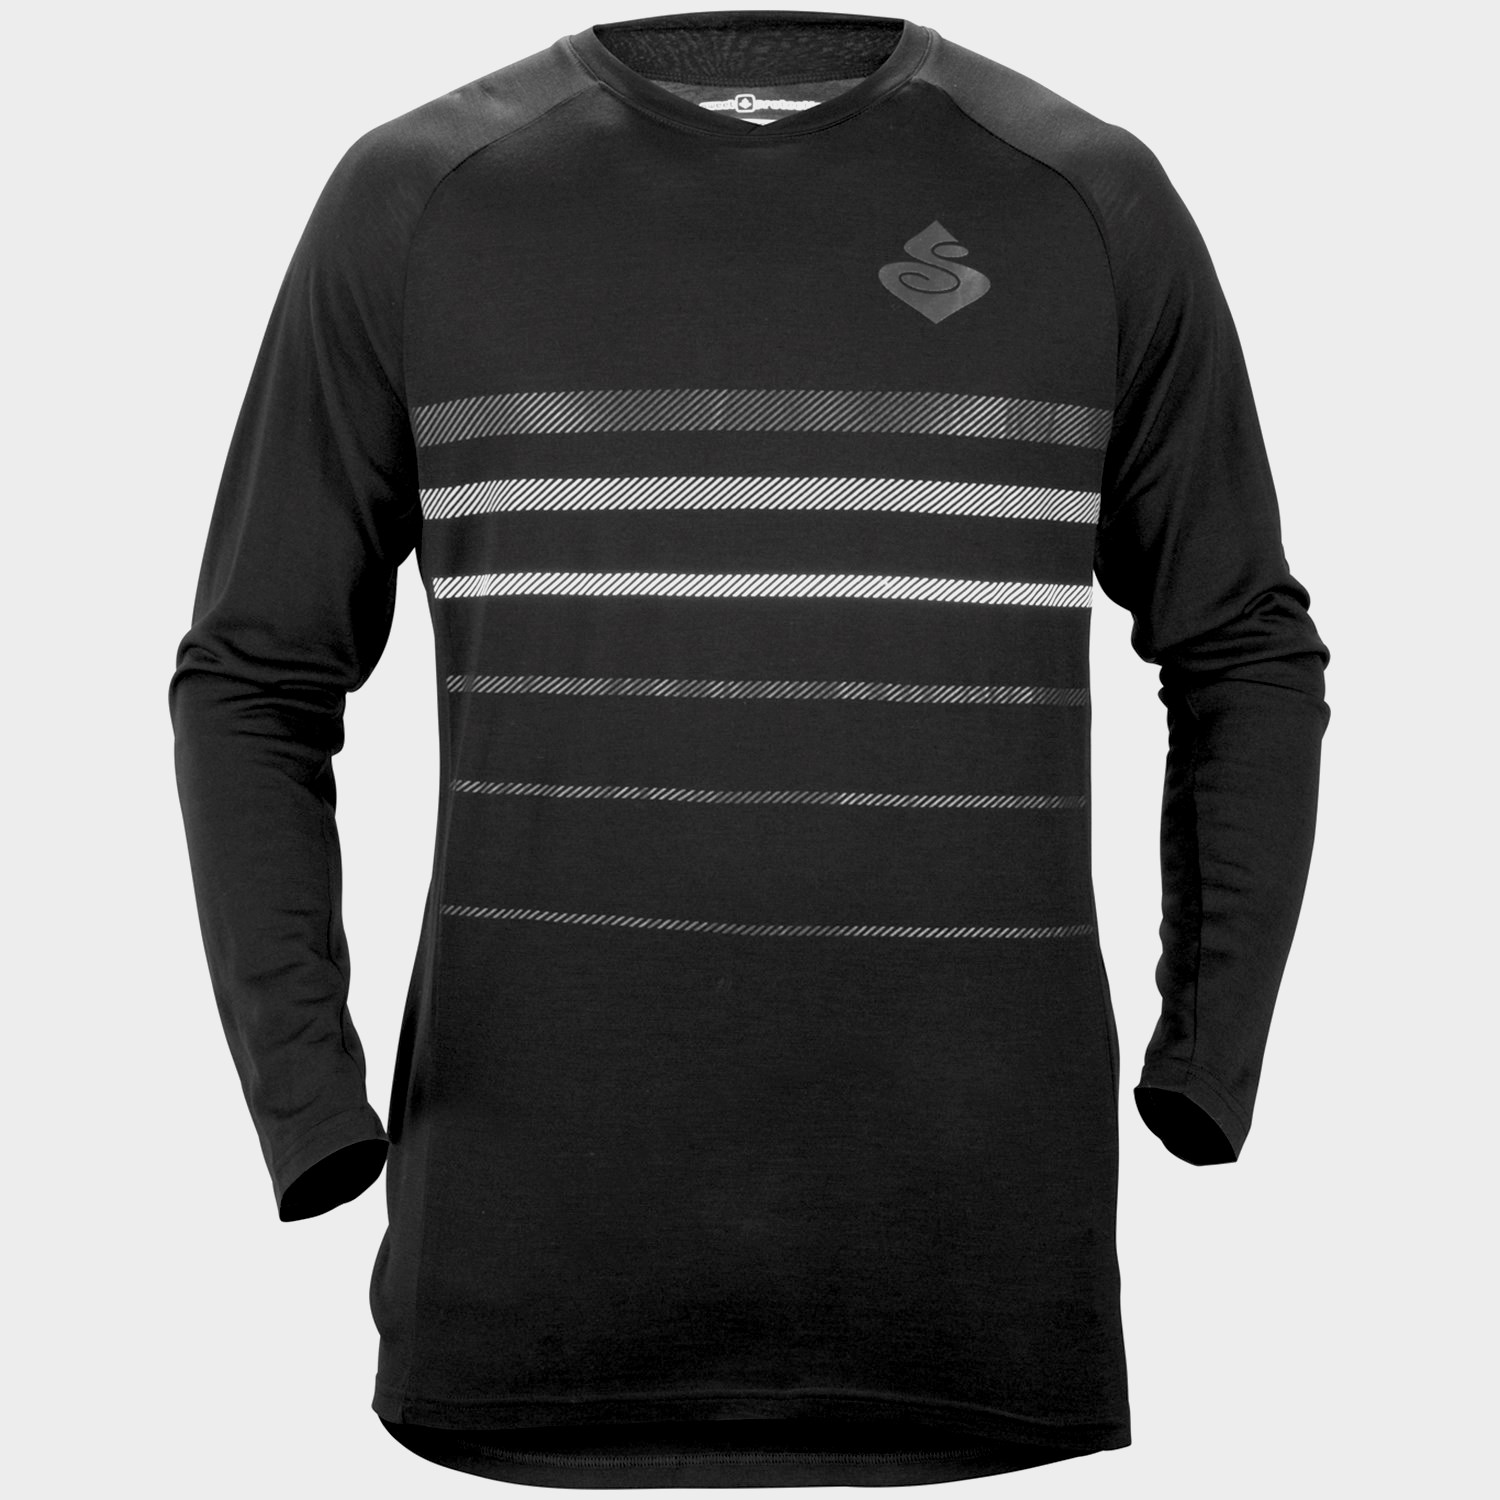 Sweet Protection Badlands Merino Jersey Review